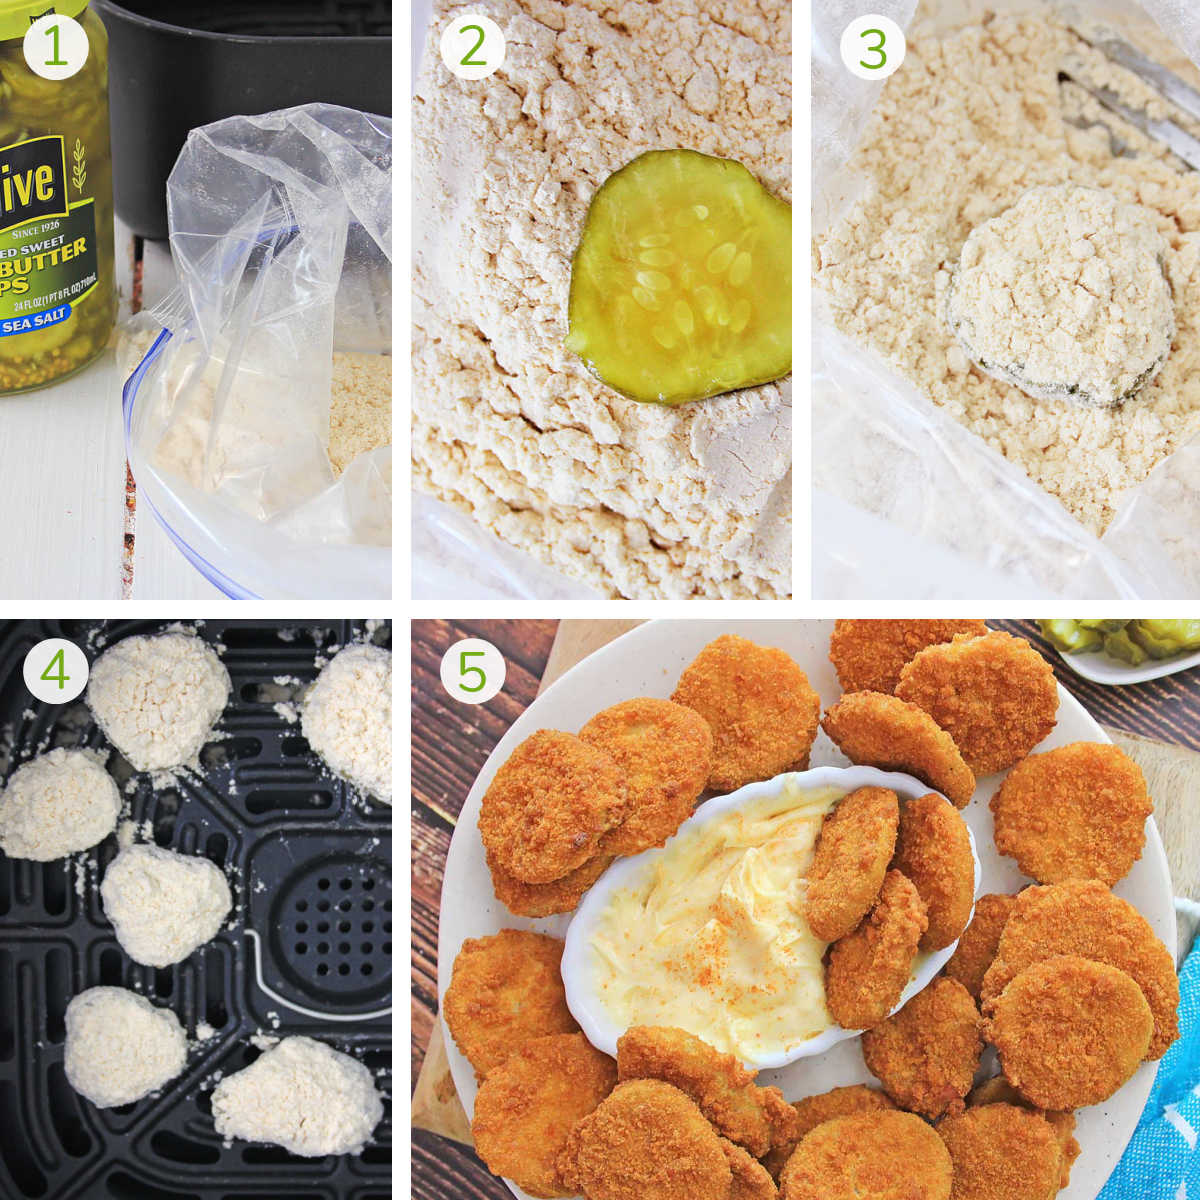 collage of several process photos showing how to coat the pickle in shake and bake and air frying it until it is golden brown.